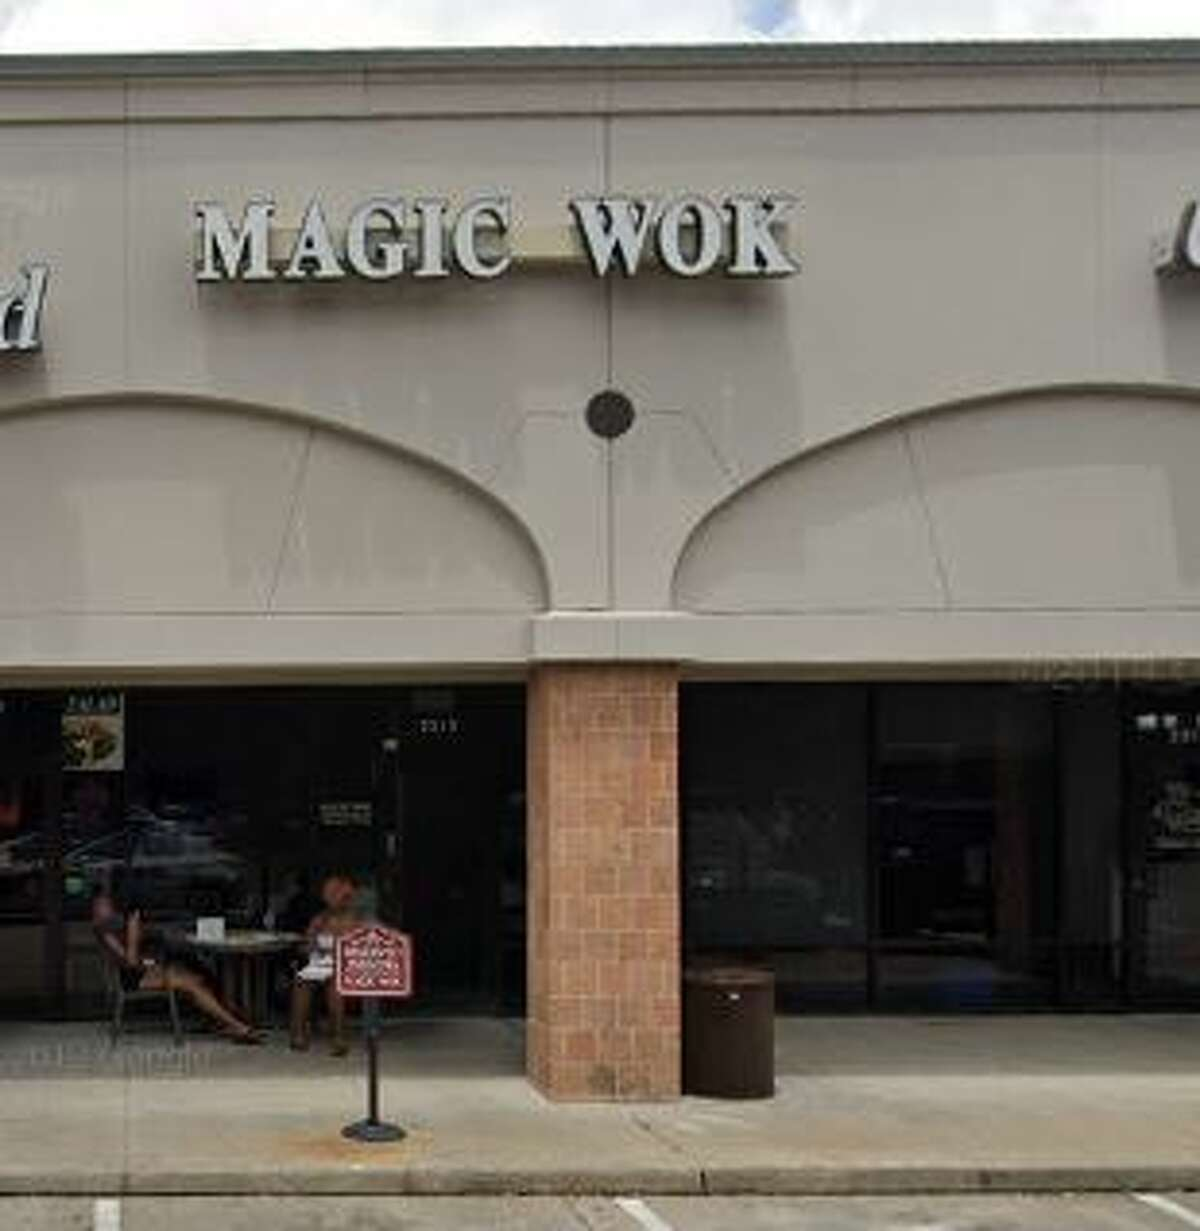 Magic Wok 2513 Bagby Demerits: 25Inspection highlights: Observed three live roaches and one dead roach in the gaskets of the reach-in freezer. Observed raw chicken stored above soy sauce; properly store foods in a manner to prevent potential contamination.